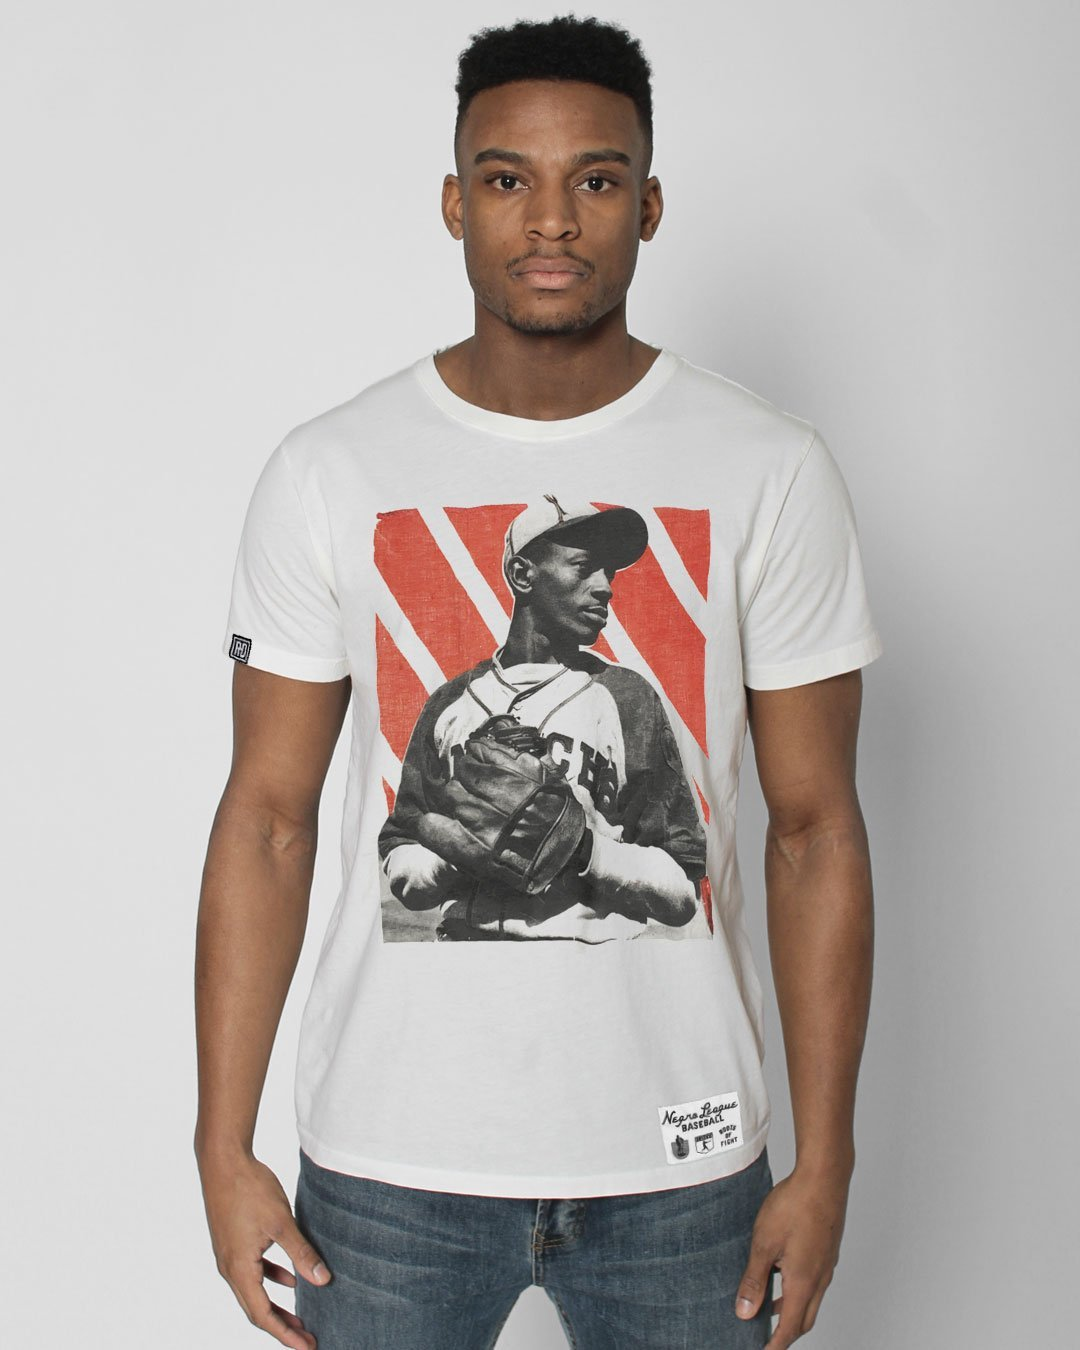 BHT - Satchel Paige Photo Tee - Roots of Inc dba Roots of Fight